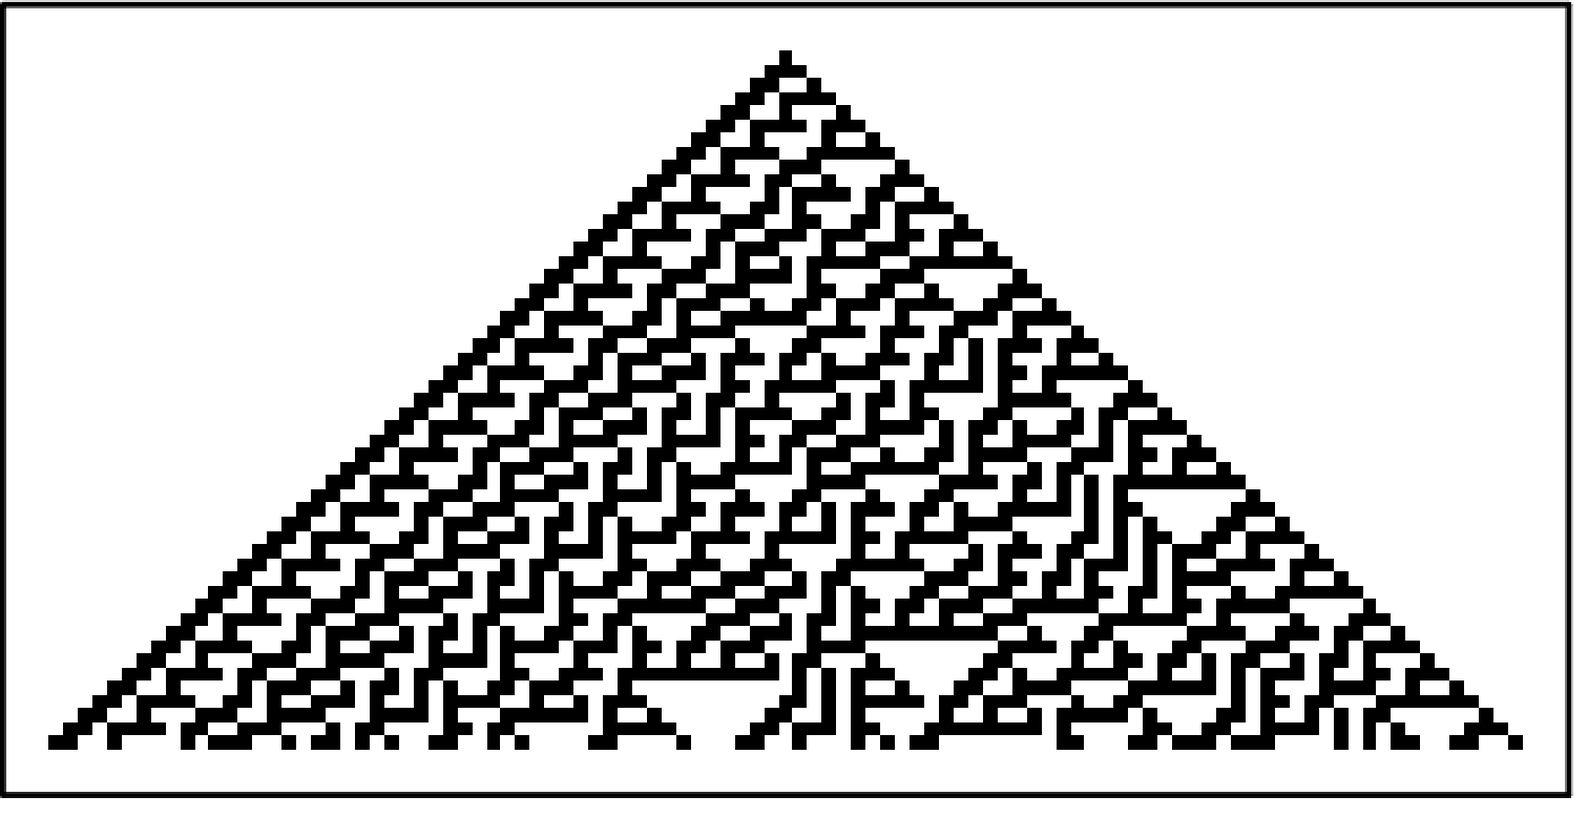 Implementing cellular automata image 1